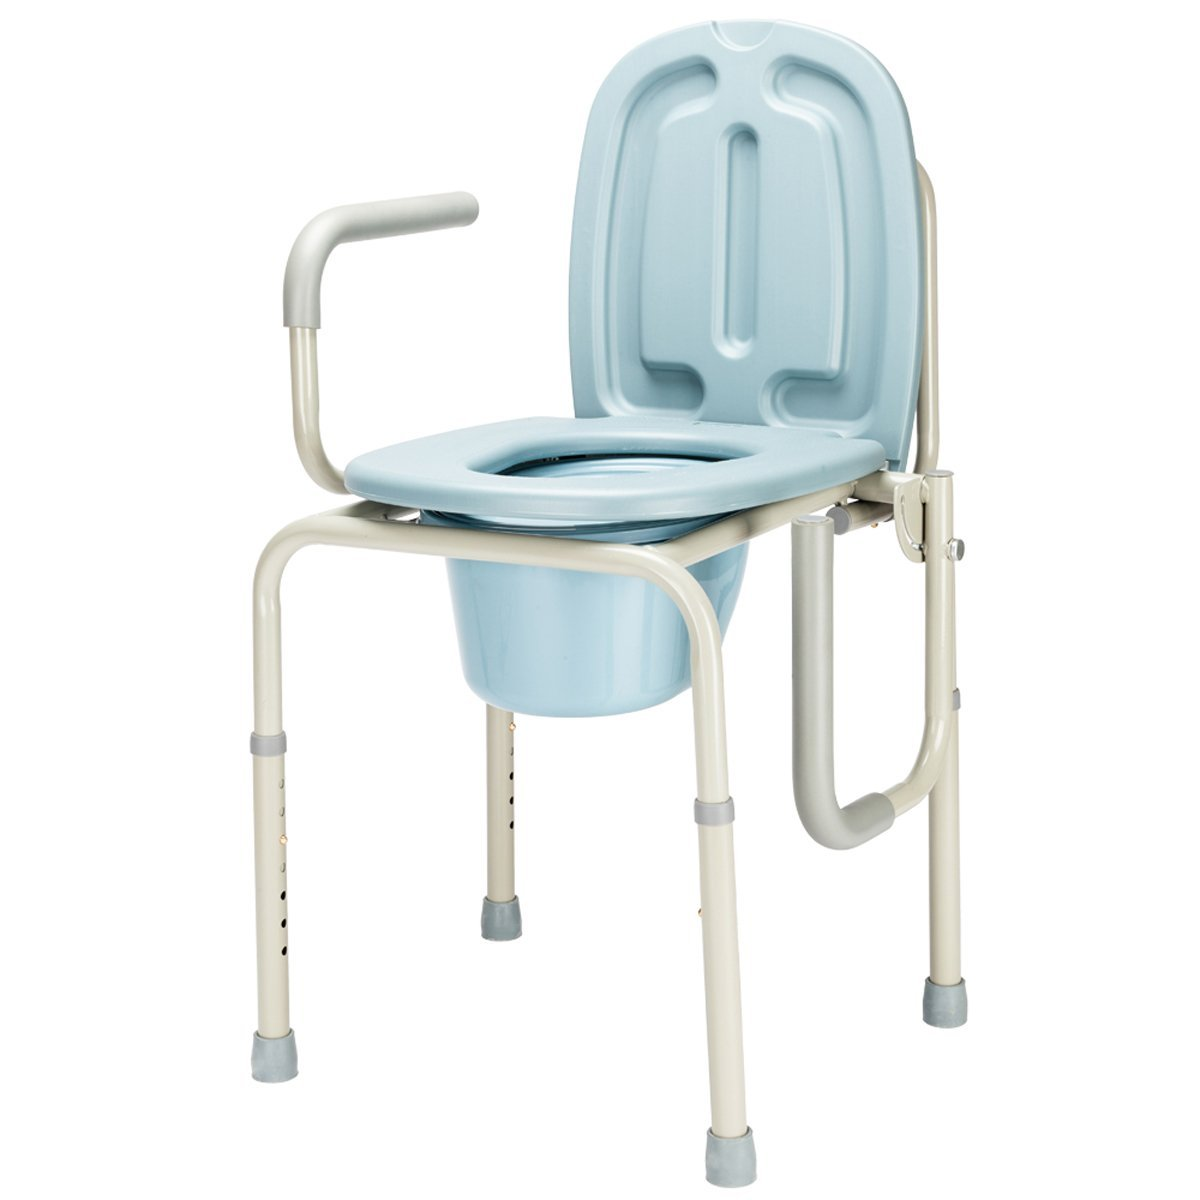 450lbs Folding Handicapped Bath Chair Disabled Toilet Potty Chair Height-Adjustable Elderly Seat Drop Arm Medical Beside Commode Chair Homecare Toilet Bath Show Seat